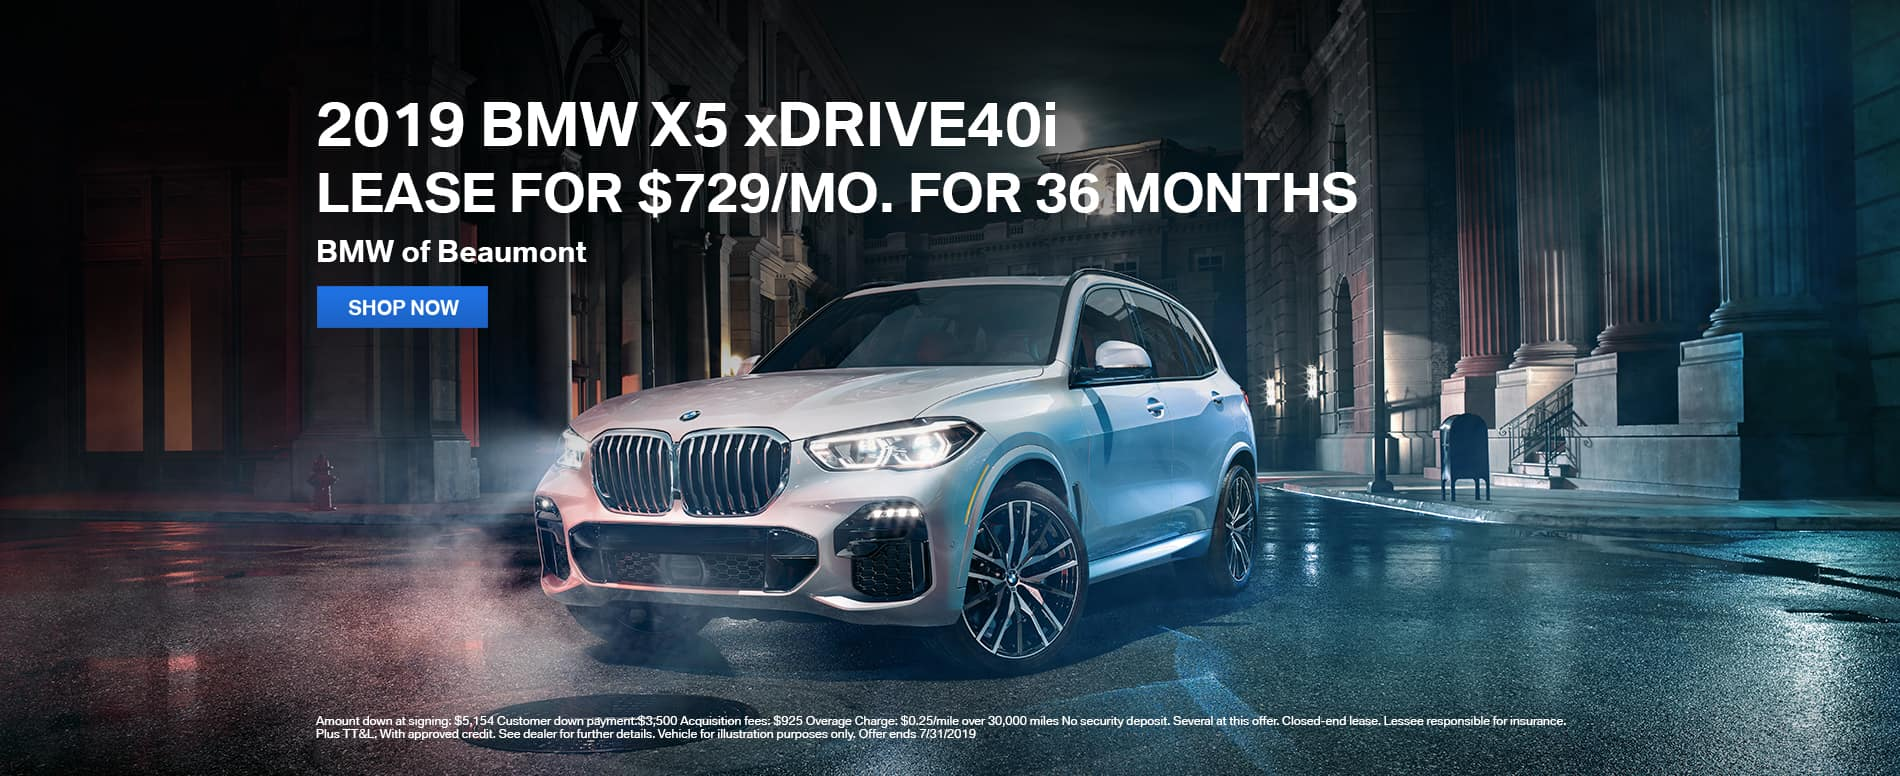 lease-2019-bmw-x5-xdrive40i-for-729-beaumont